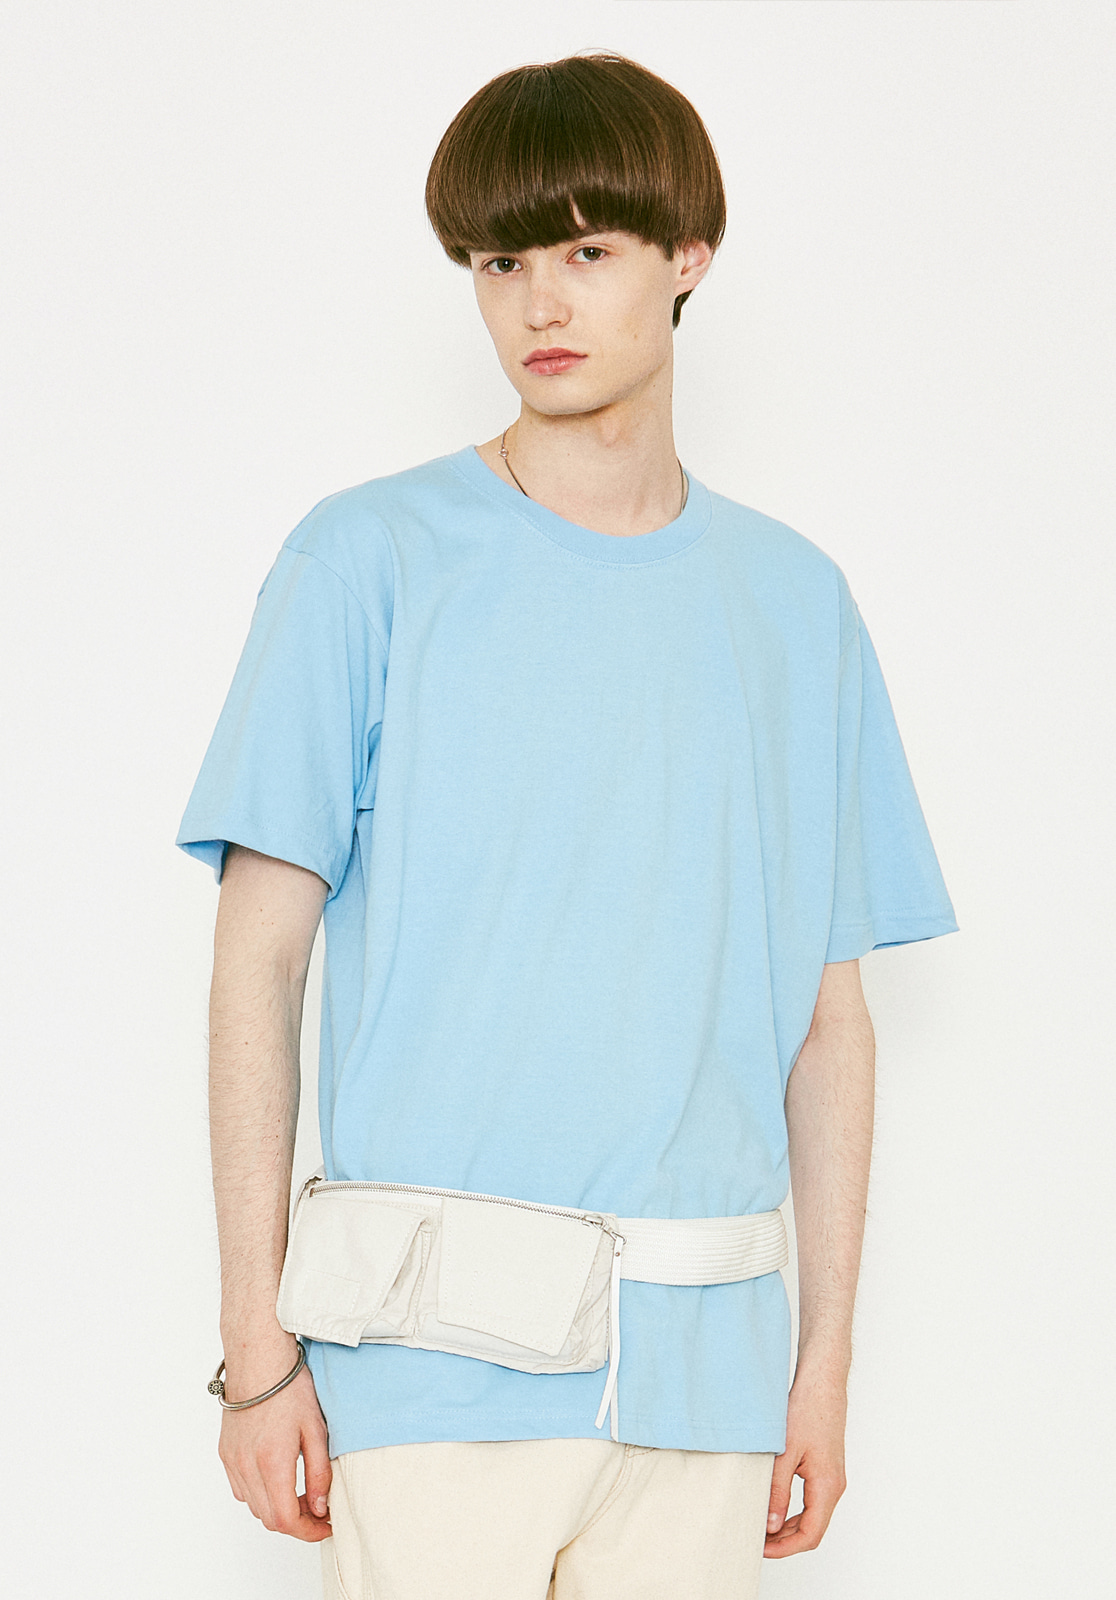 V367 BASIC OVER FIT HALF-TEE SKYBLUE